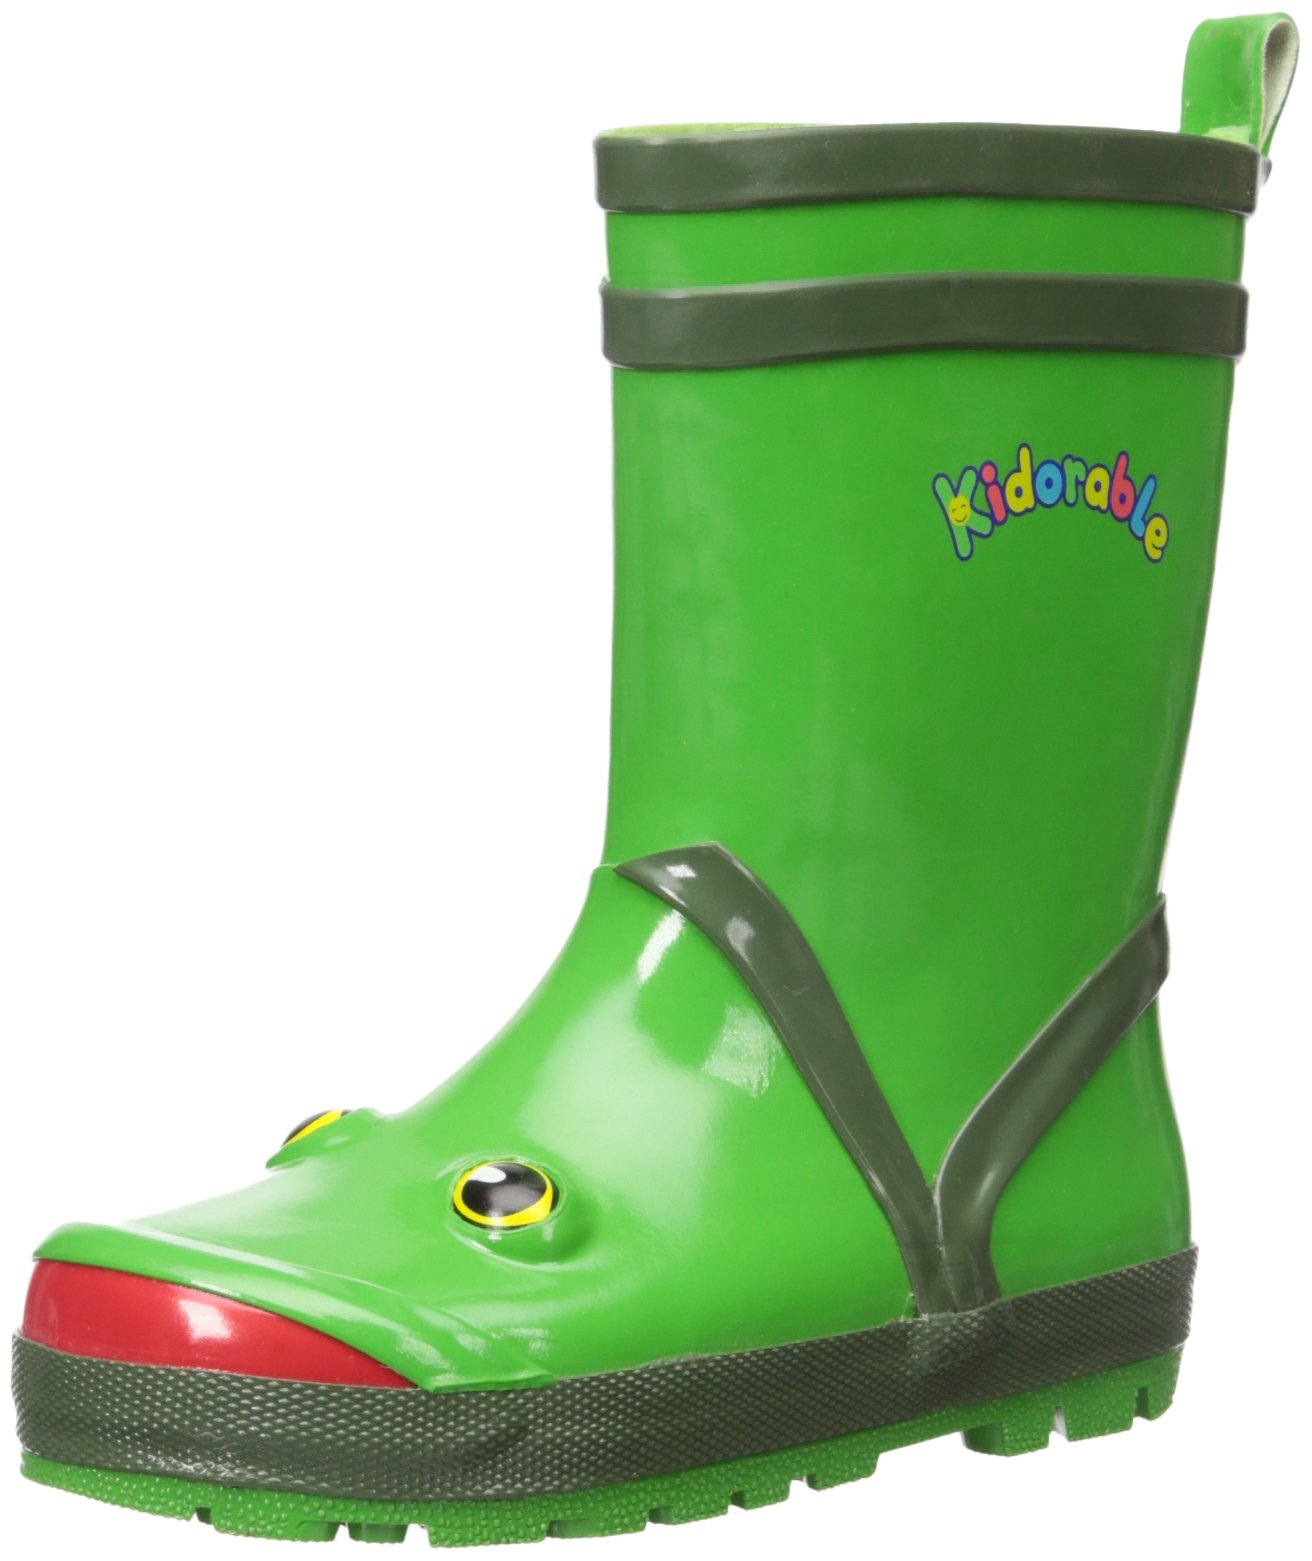 Kidorable Green Frog Natural Rubber Rain Boots With A Pull On Heel Tab (Little Kid) 12 M US by Kidorable (Image #2)